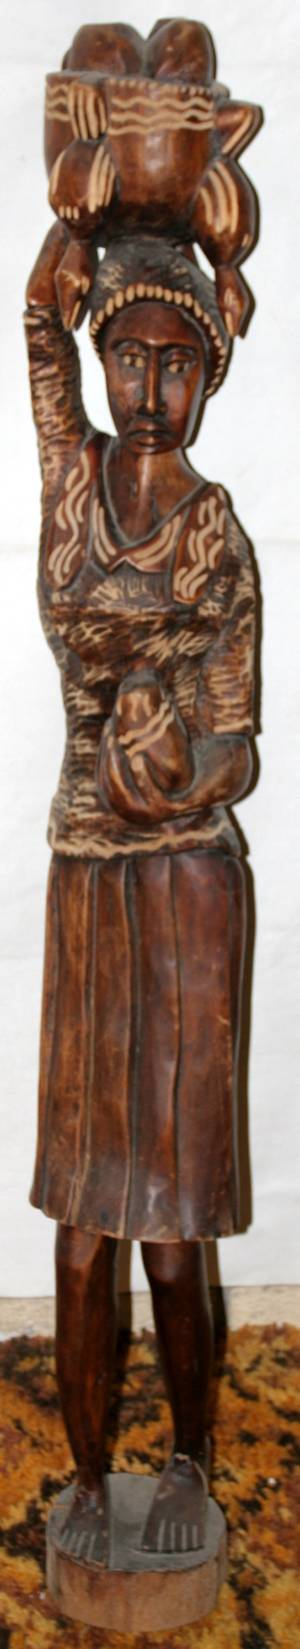 082451 AFRICAN CARVED WOOD FIGURE OF A WOMAN